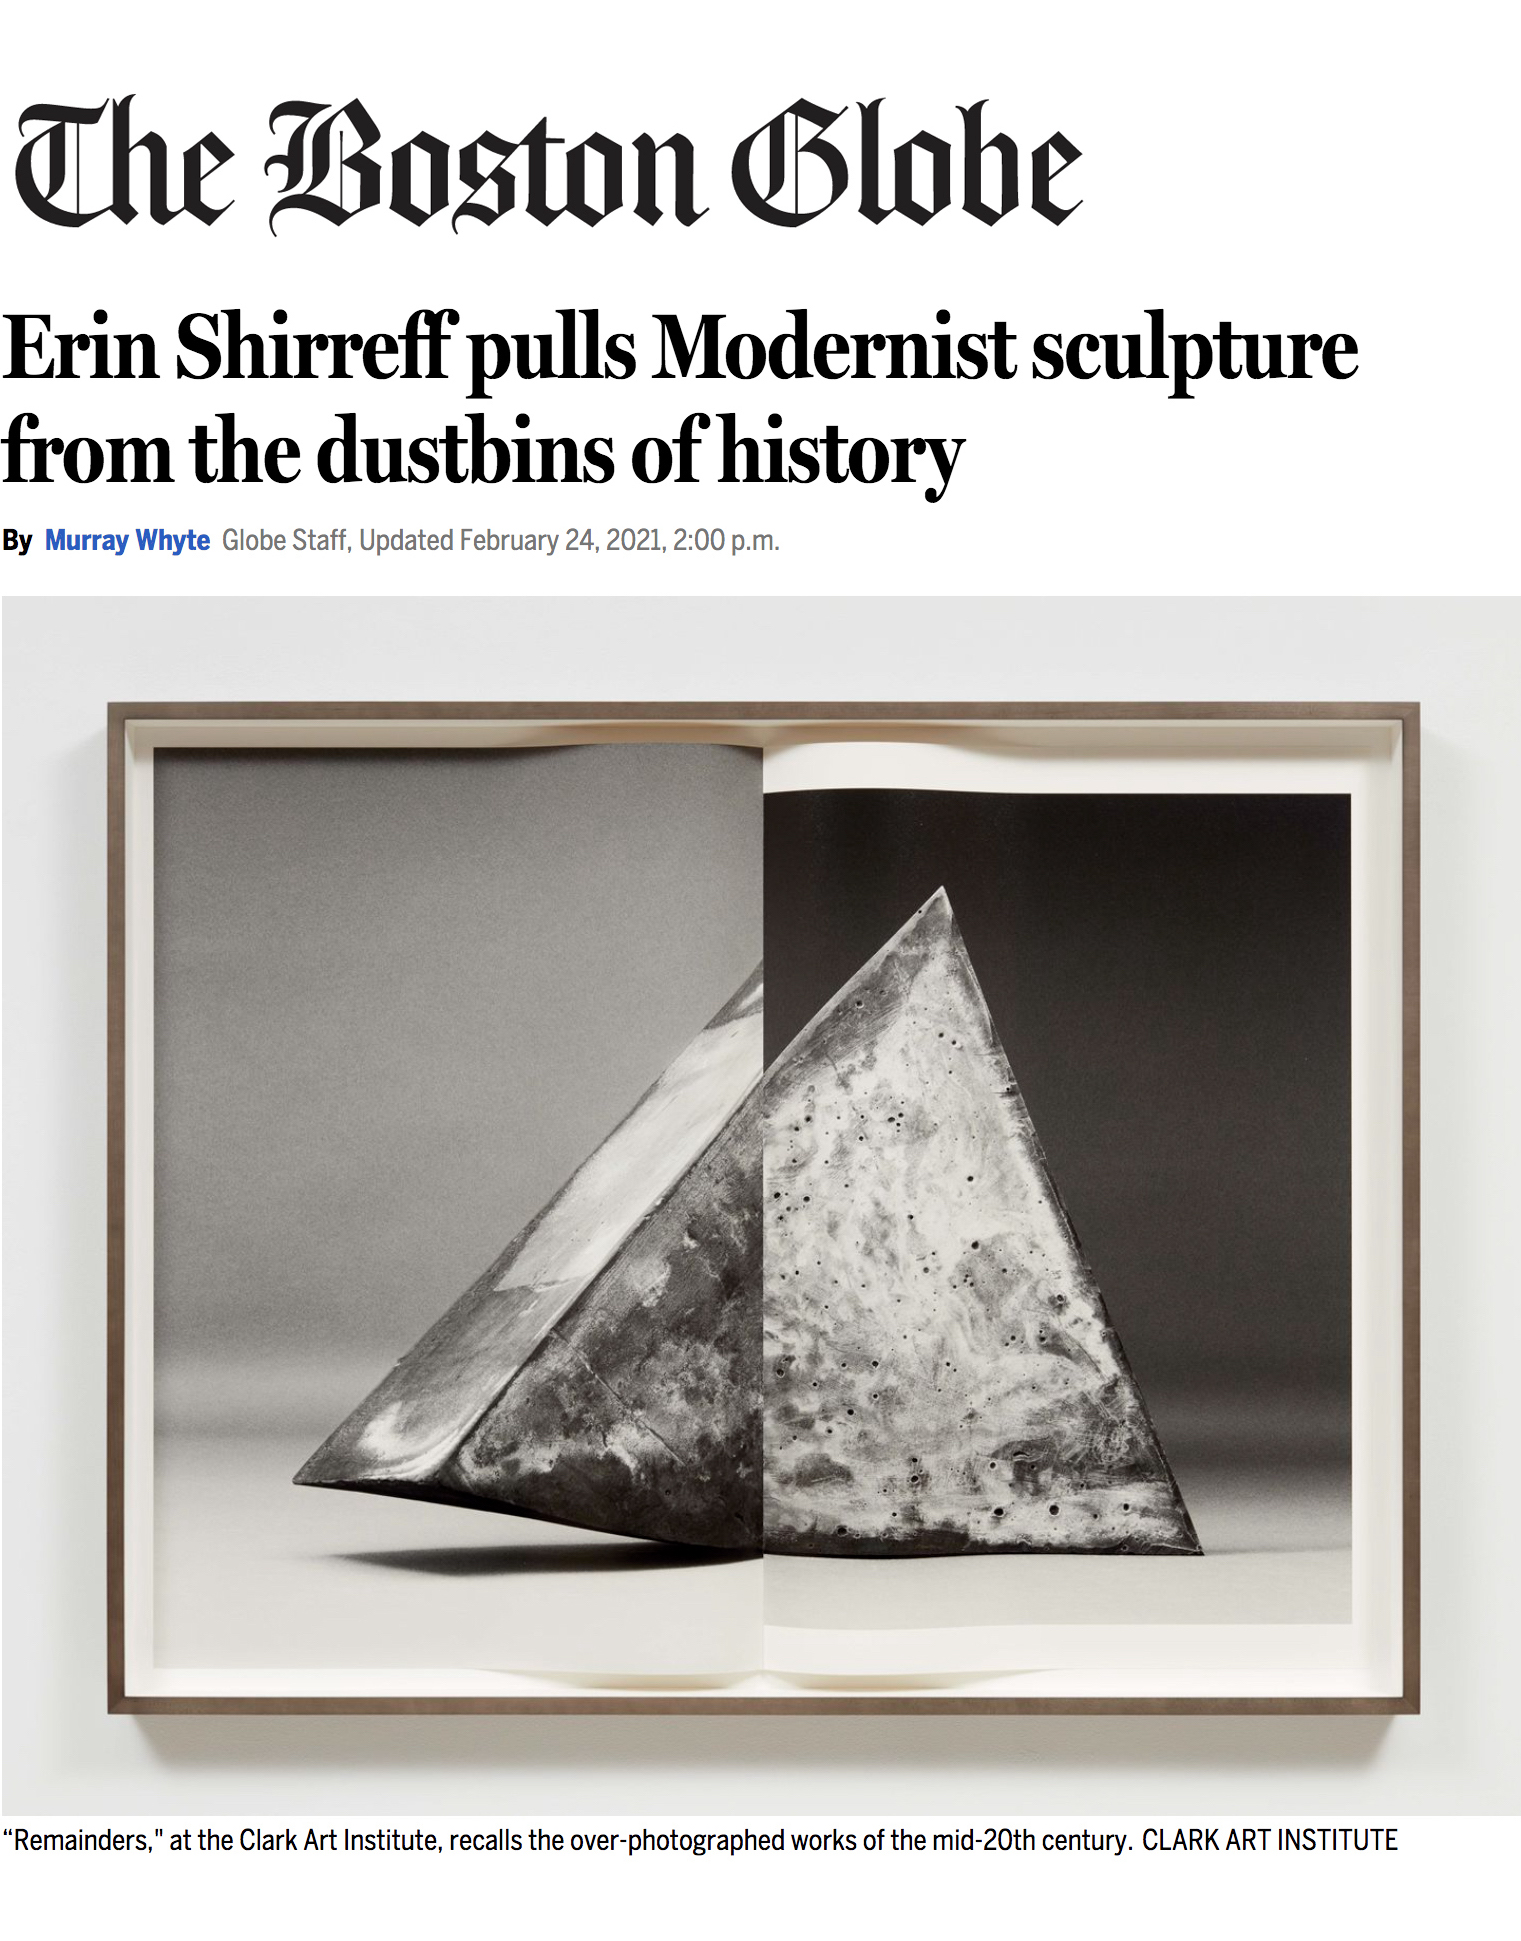 Erin Shirreff's exhibition reviewed in The Boston Globe